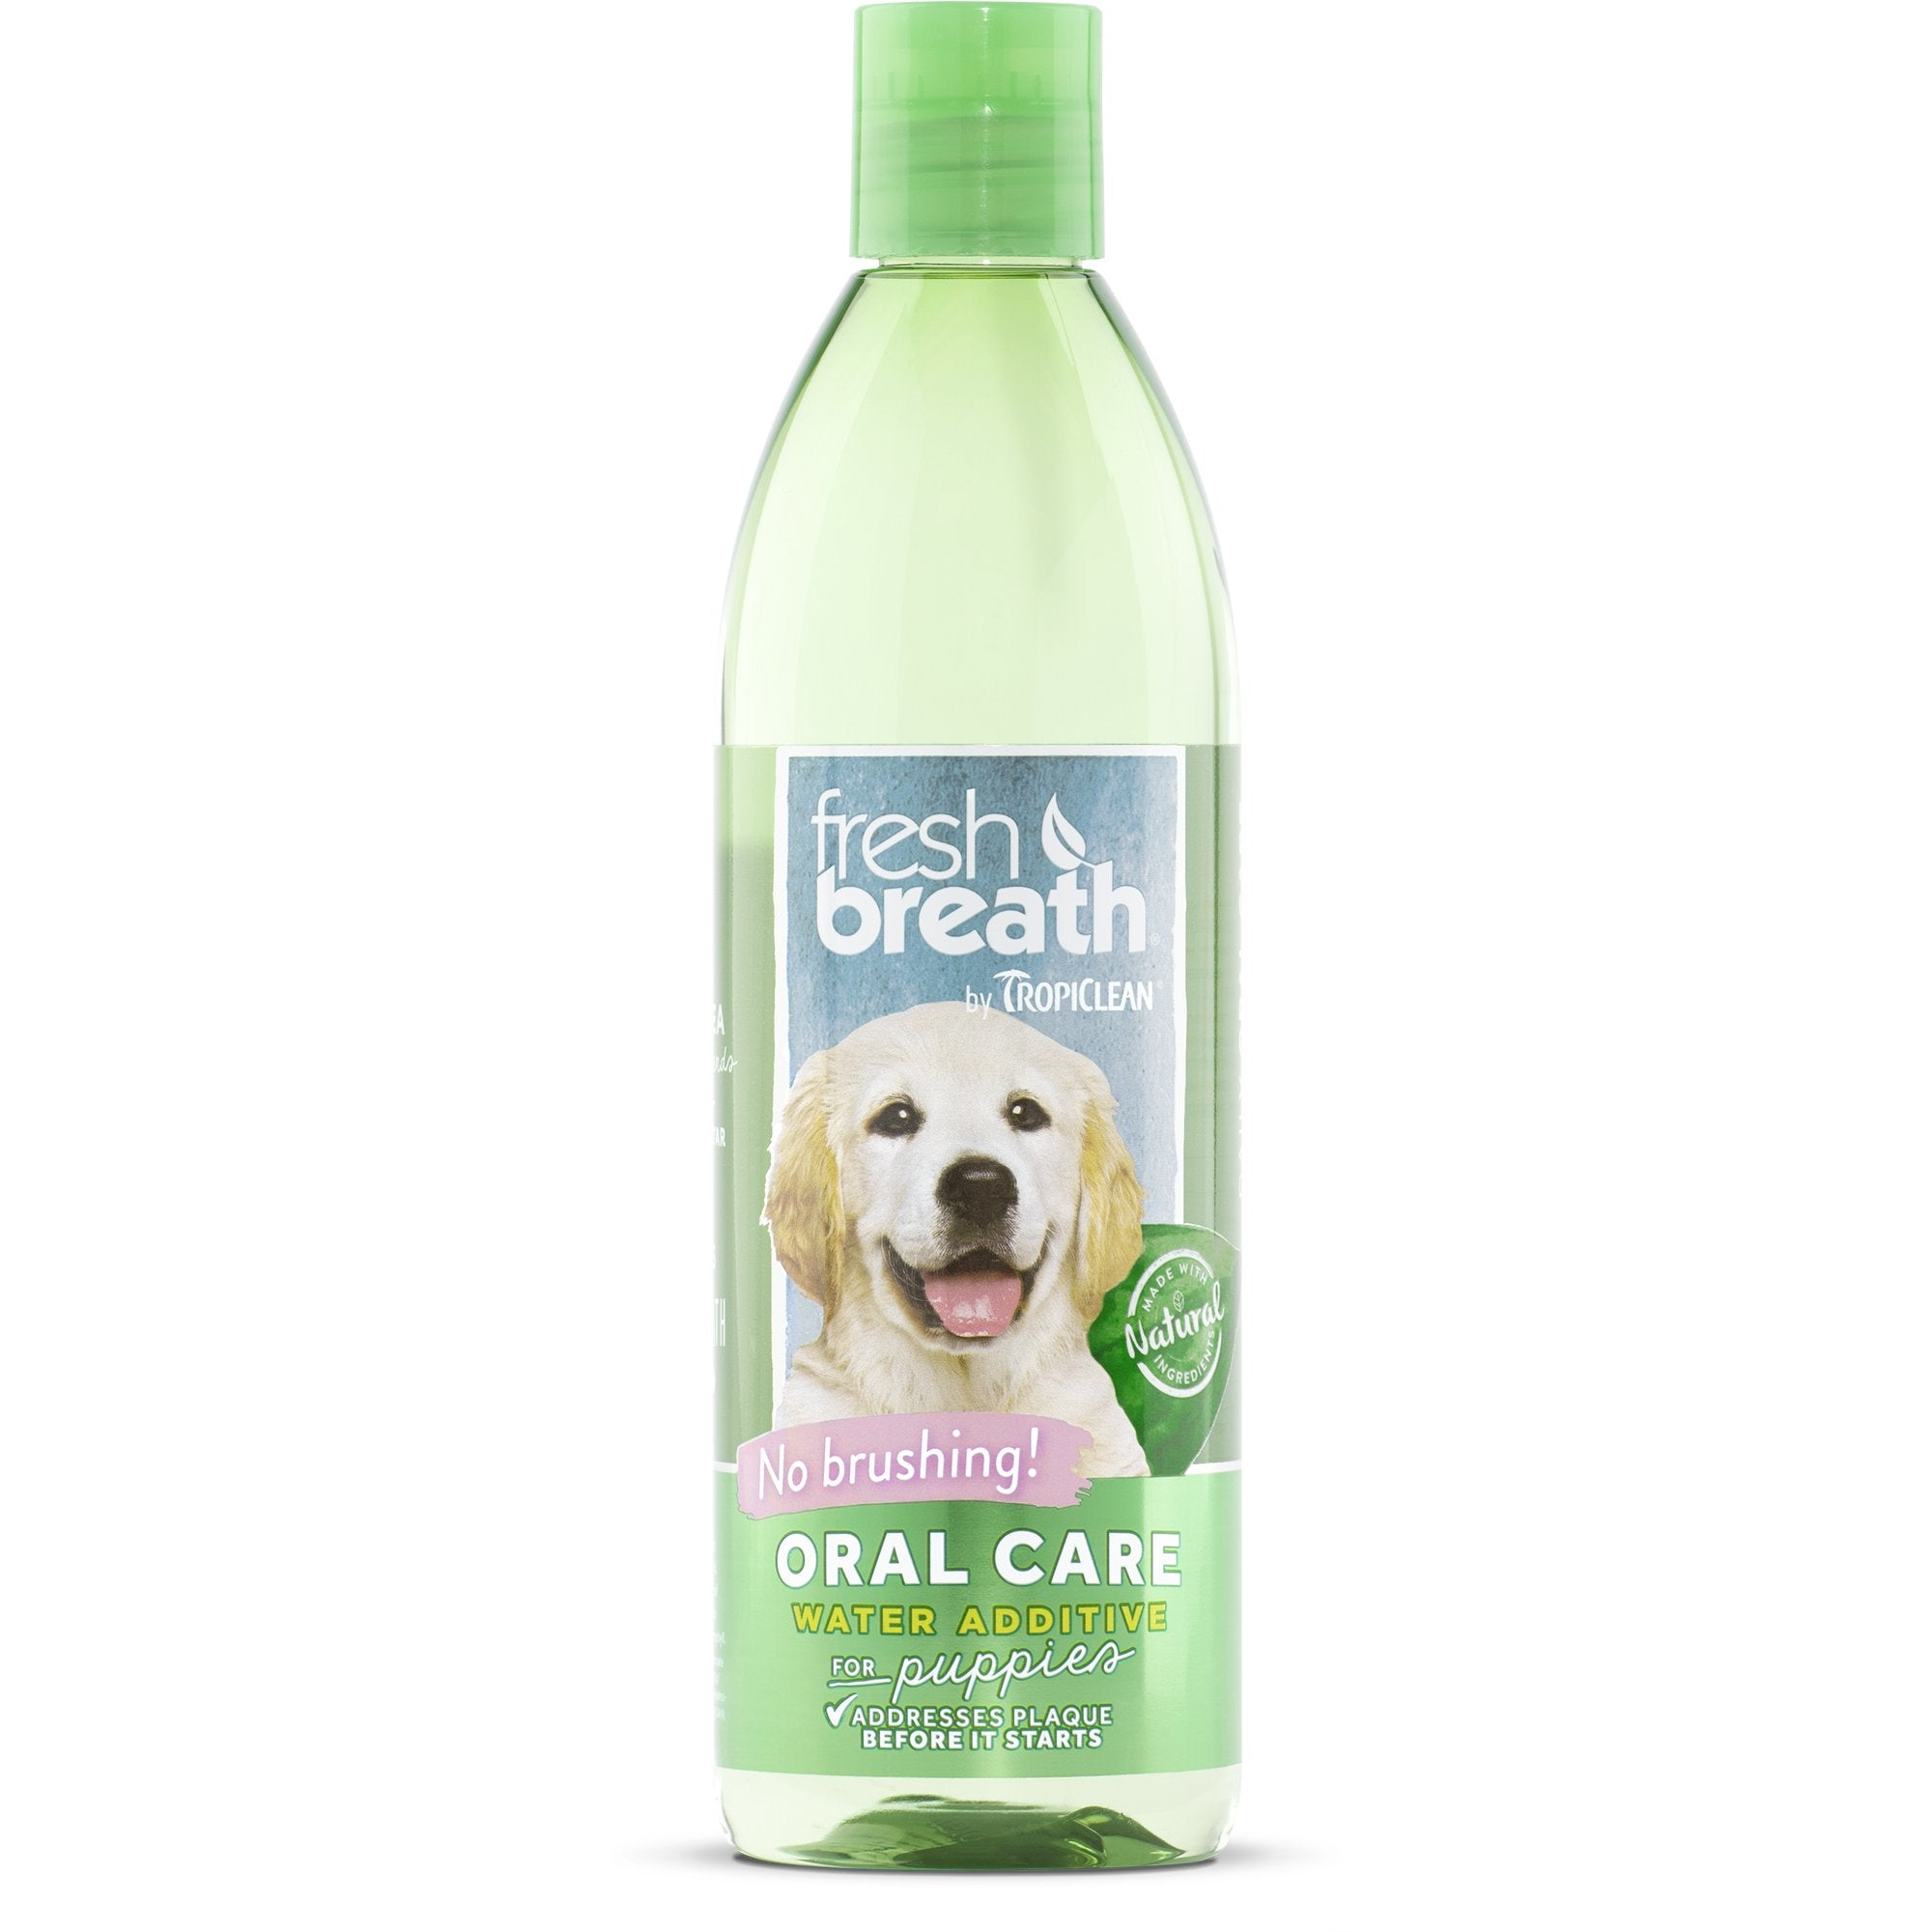 Tropiclean - Fresh Breath - Oral Care Water Additive for Puppies